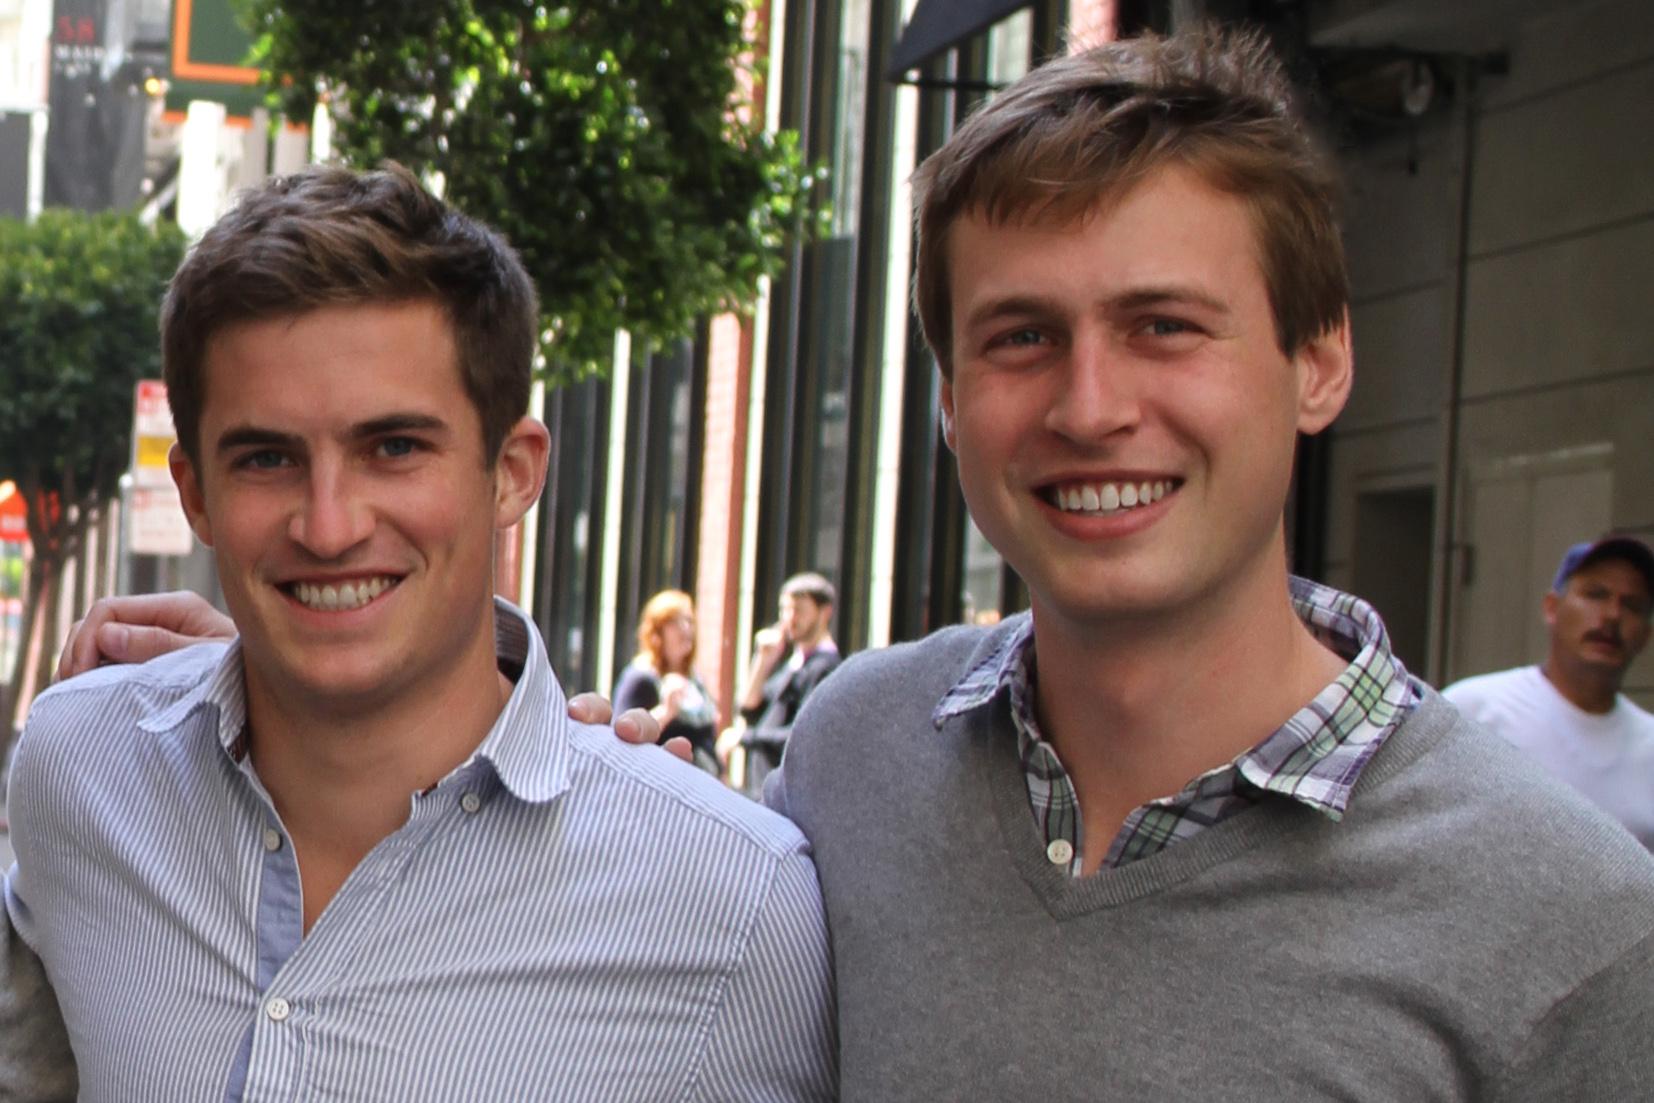 Plaid's founder. William Hockey is on the left, Zach  Perret is on the right.